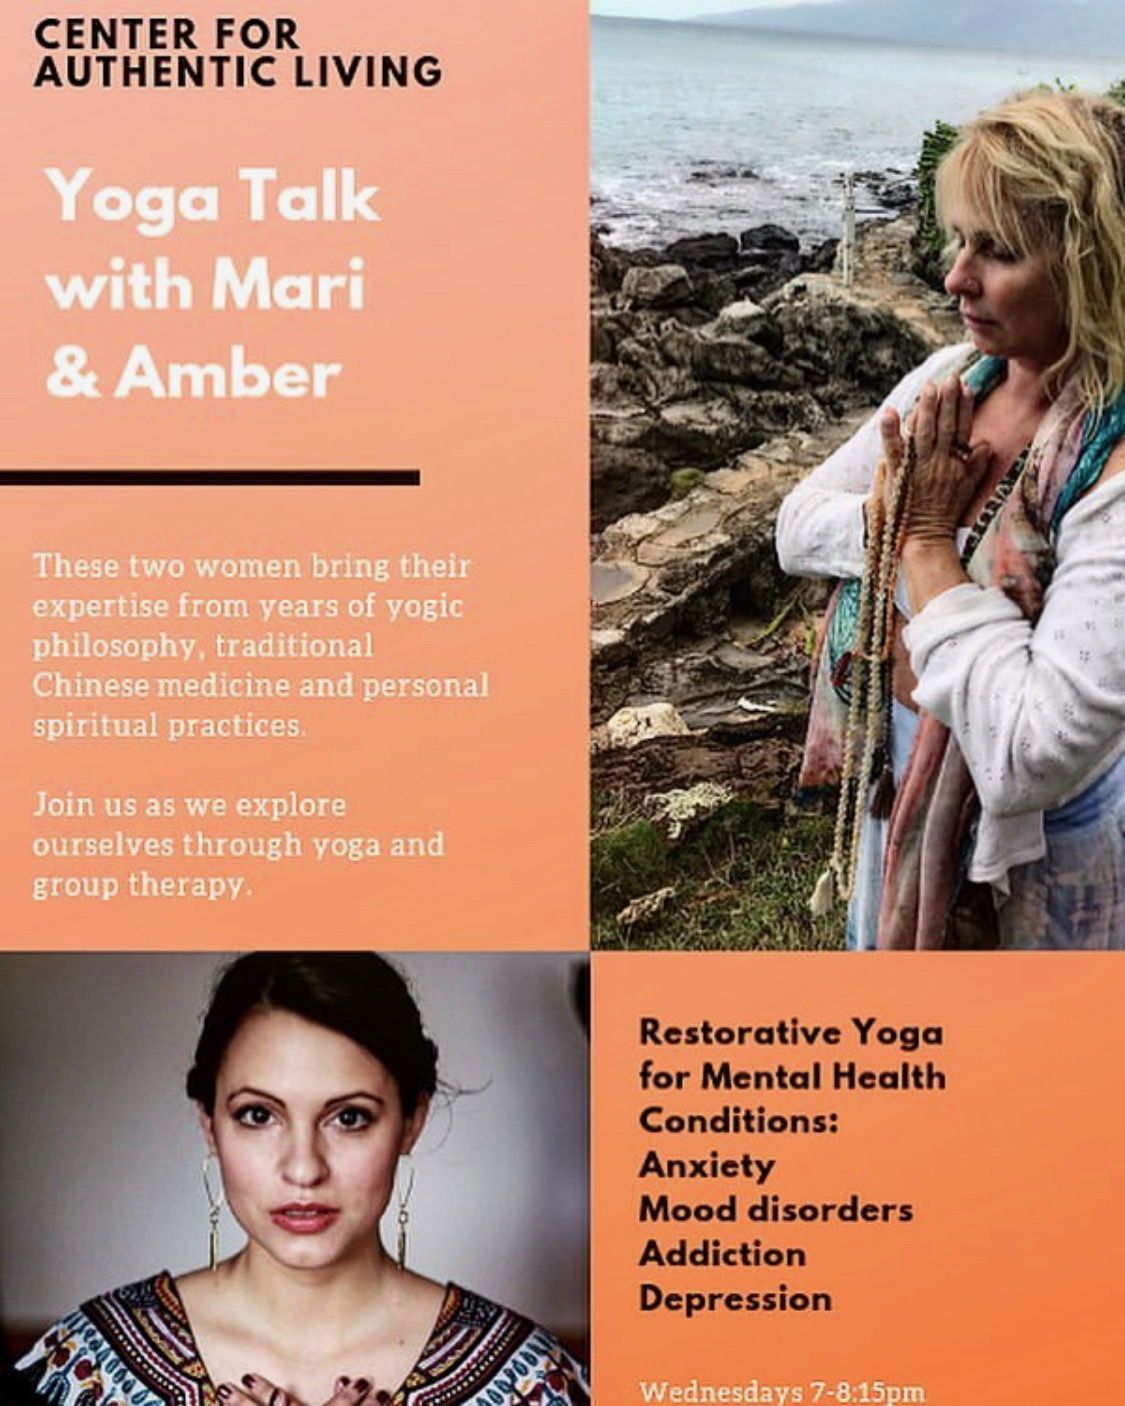 Yoga Talk with Mari and Amber